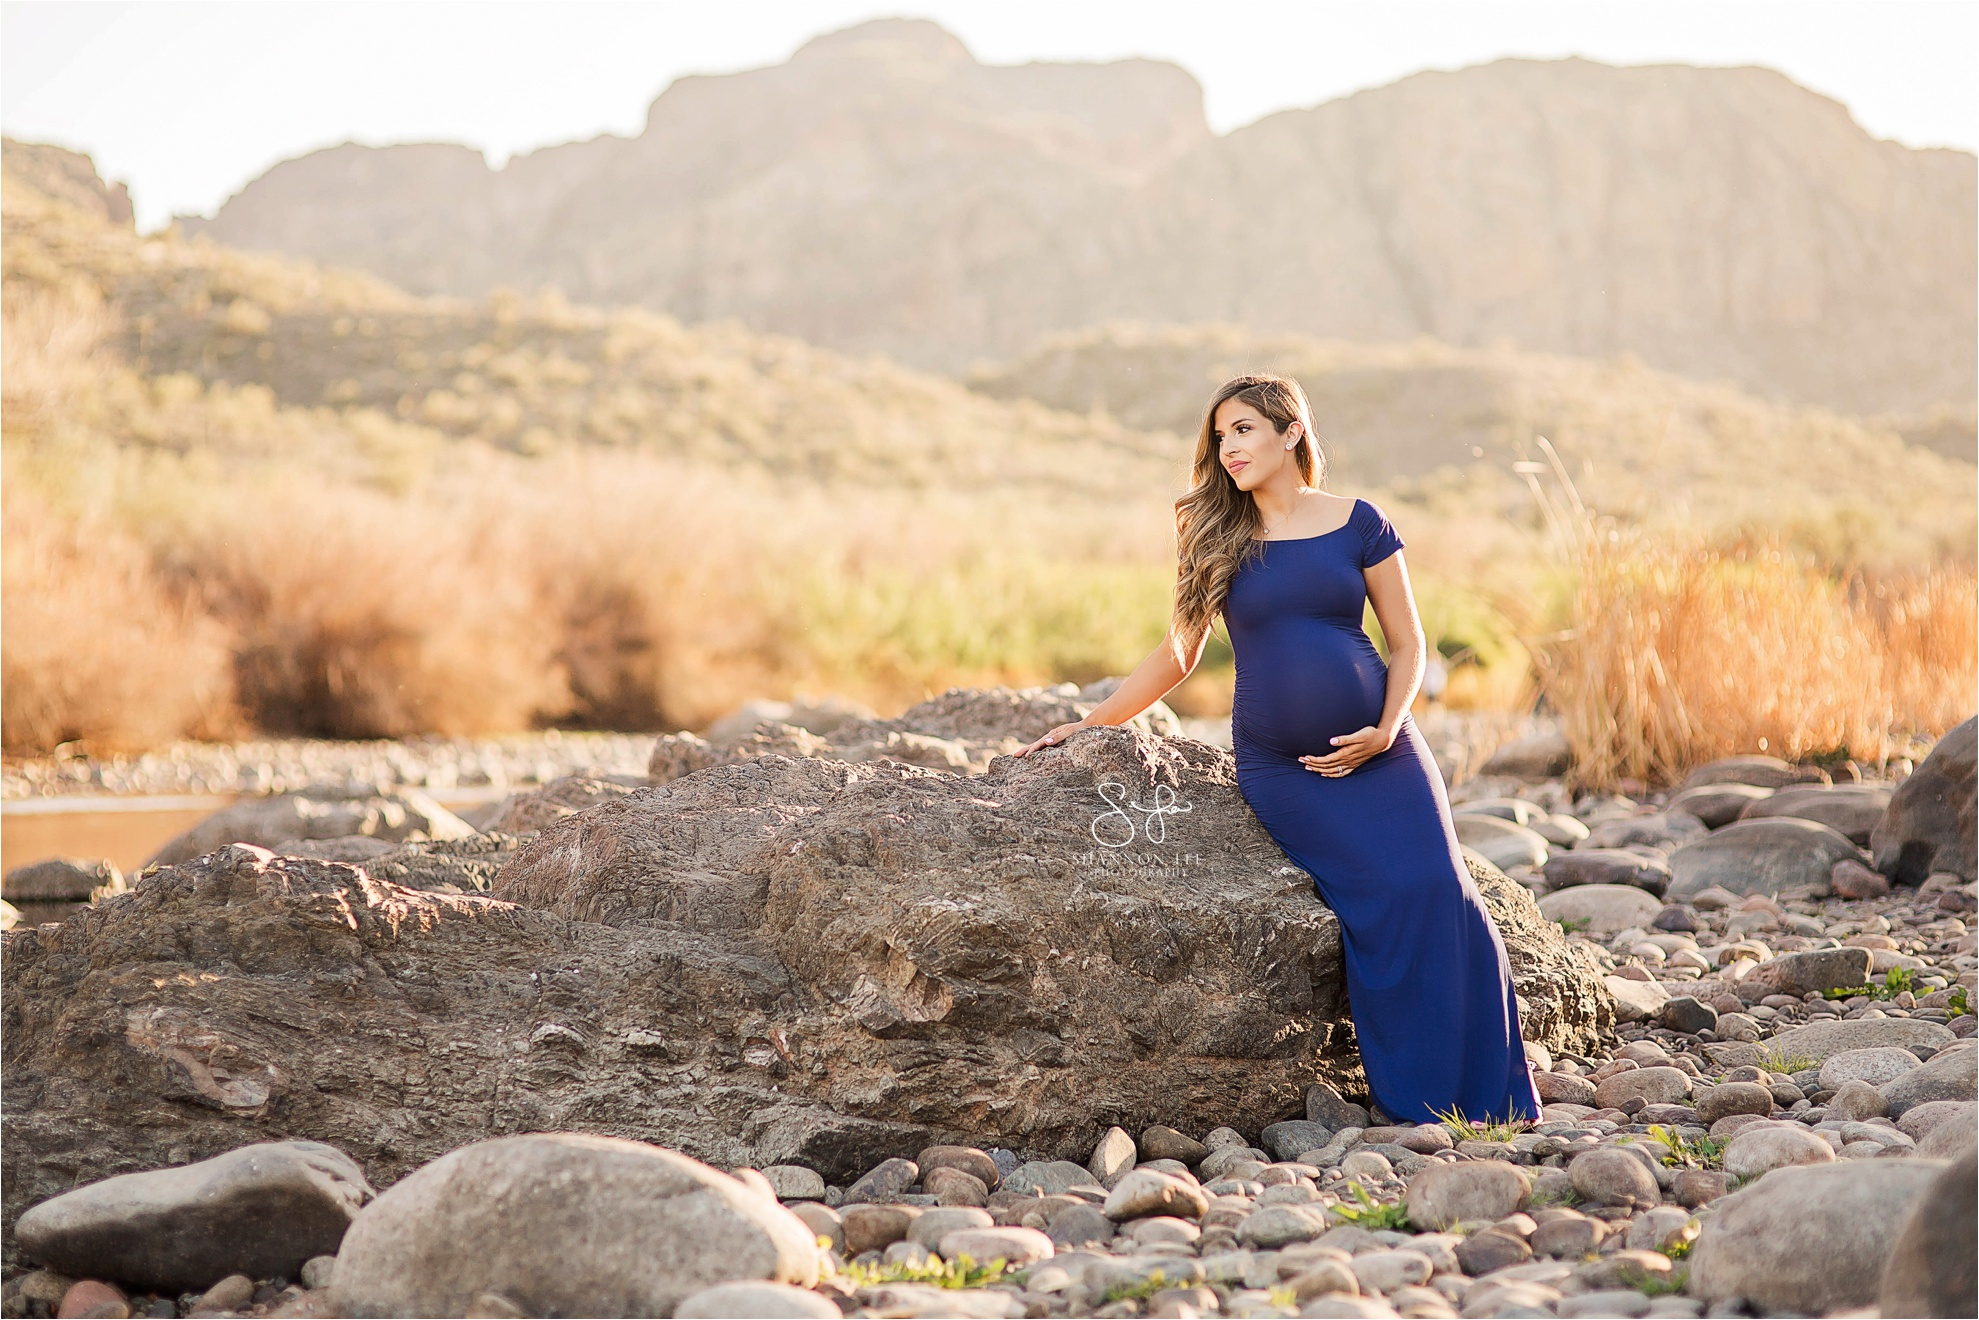 Scottsdale Maternity Photography | Salt River Maternity Session